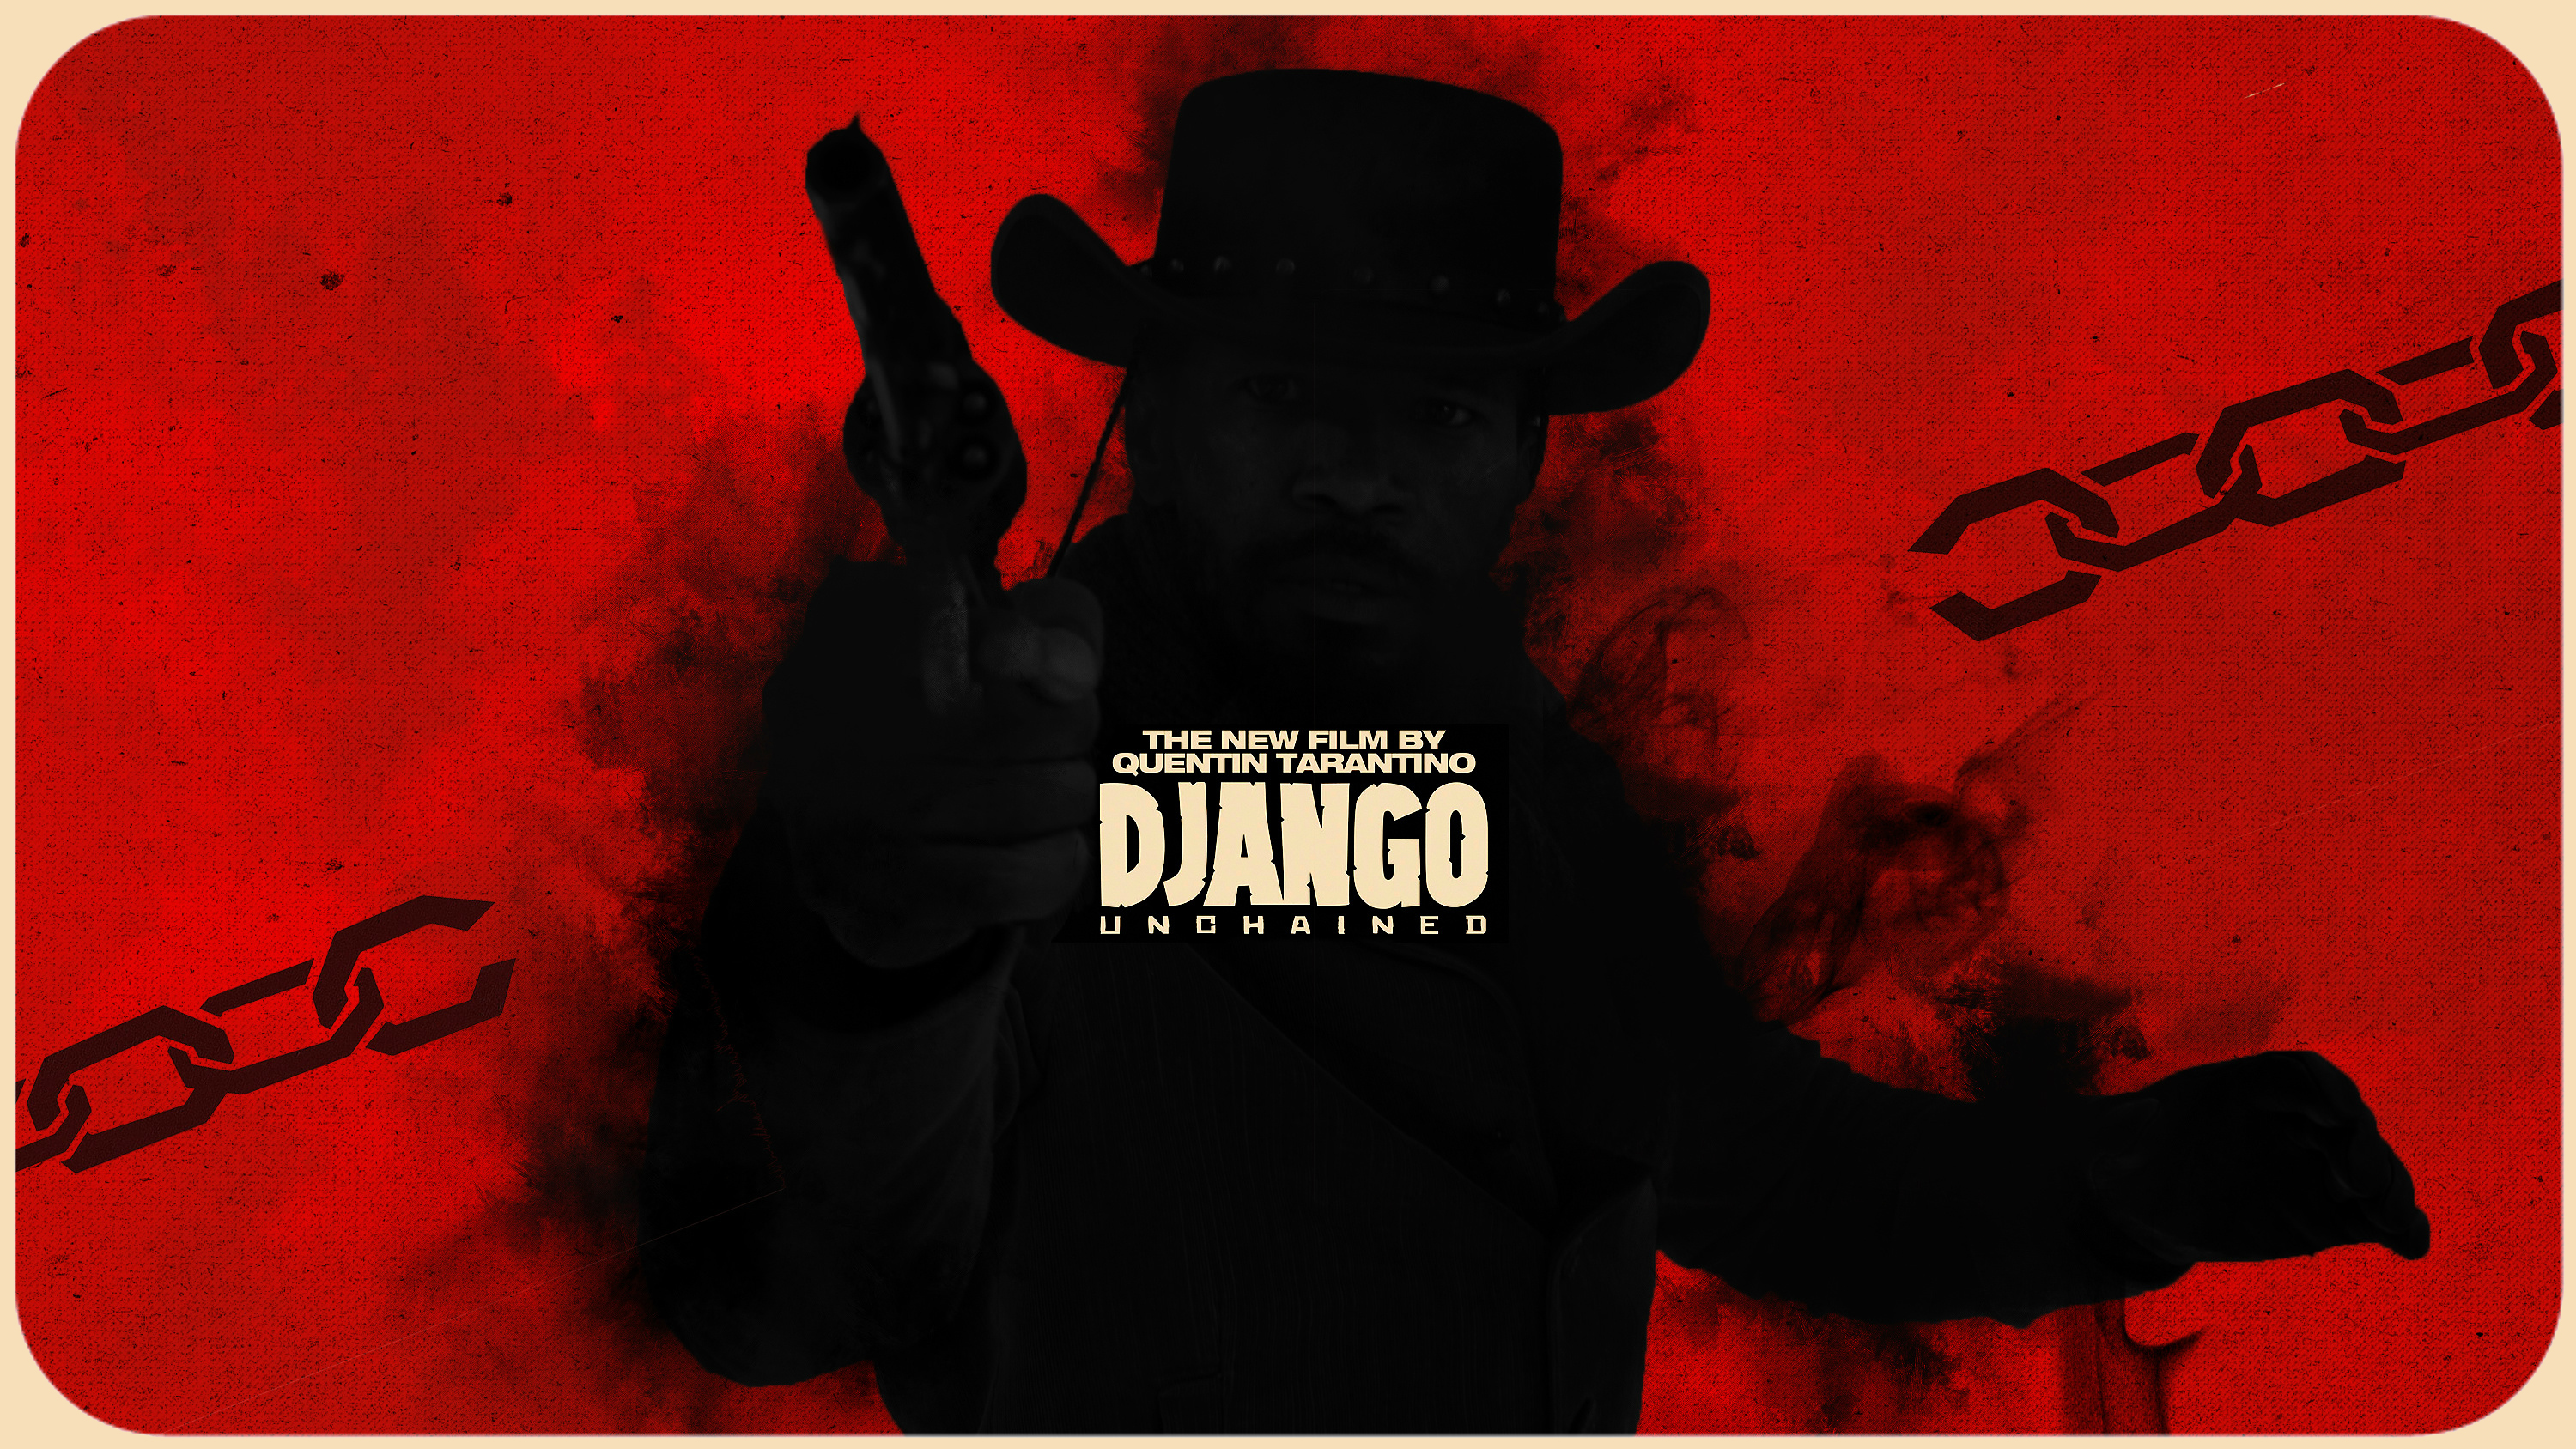 download Django unchained by Mysoed [3000x1688] for your 3000x1688